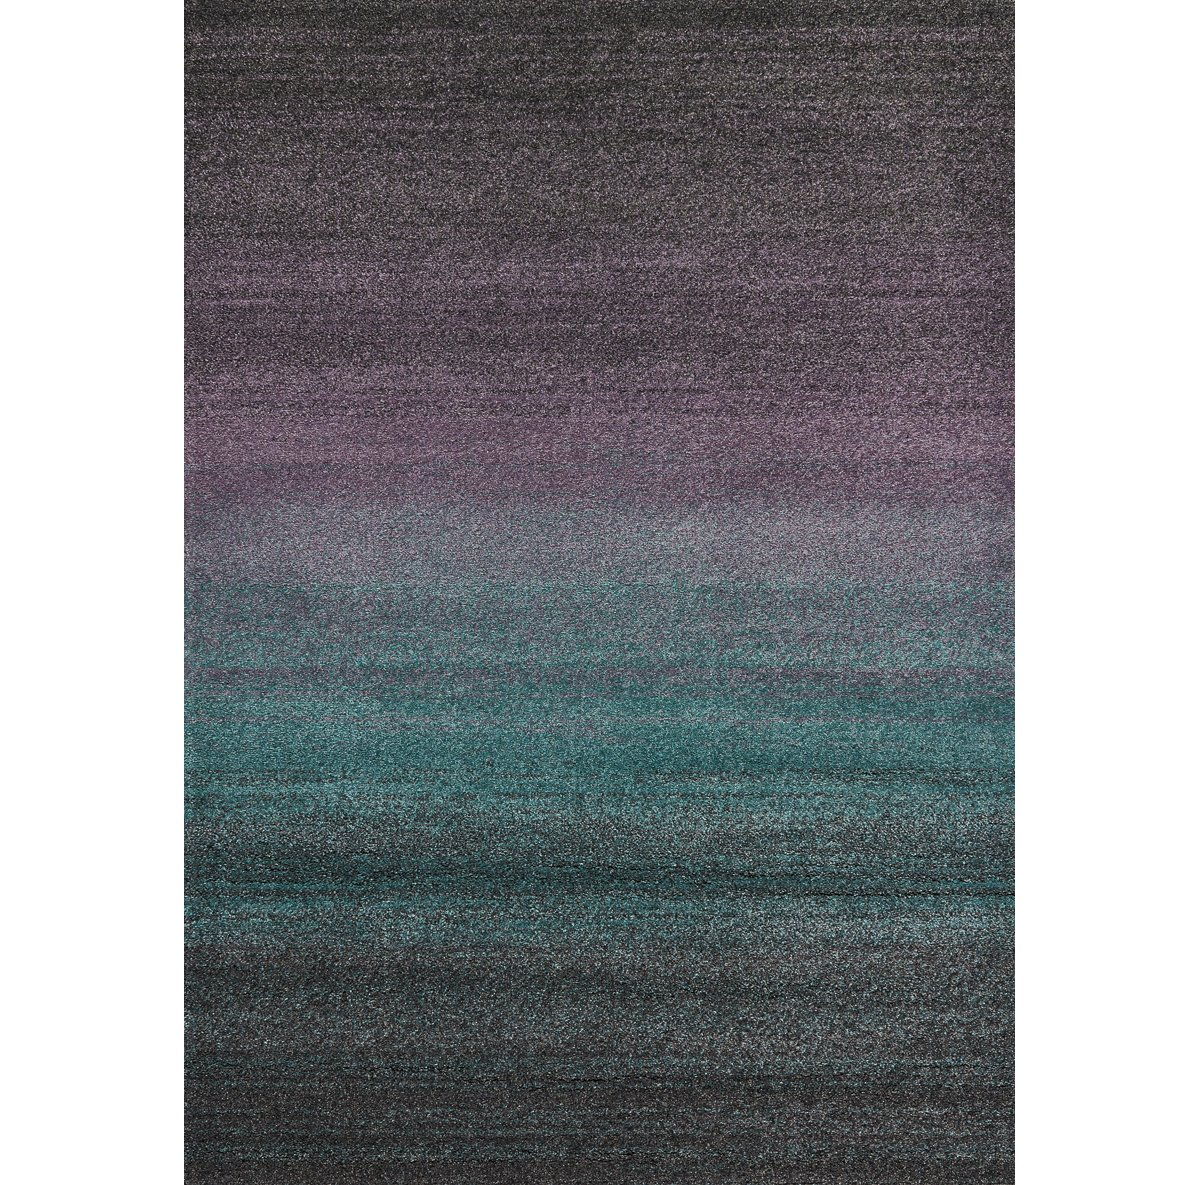 Ashbury Multicolored 8x10 Area Rug